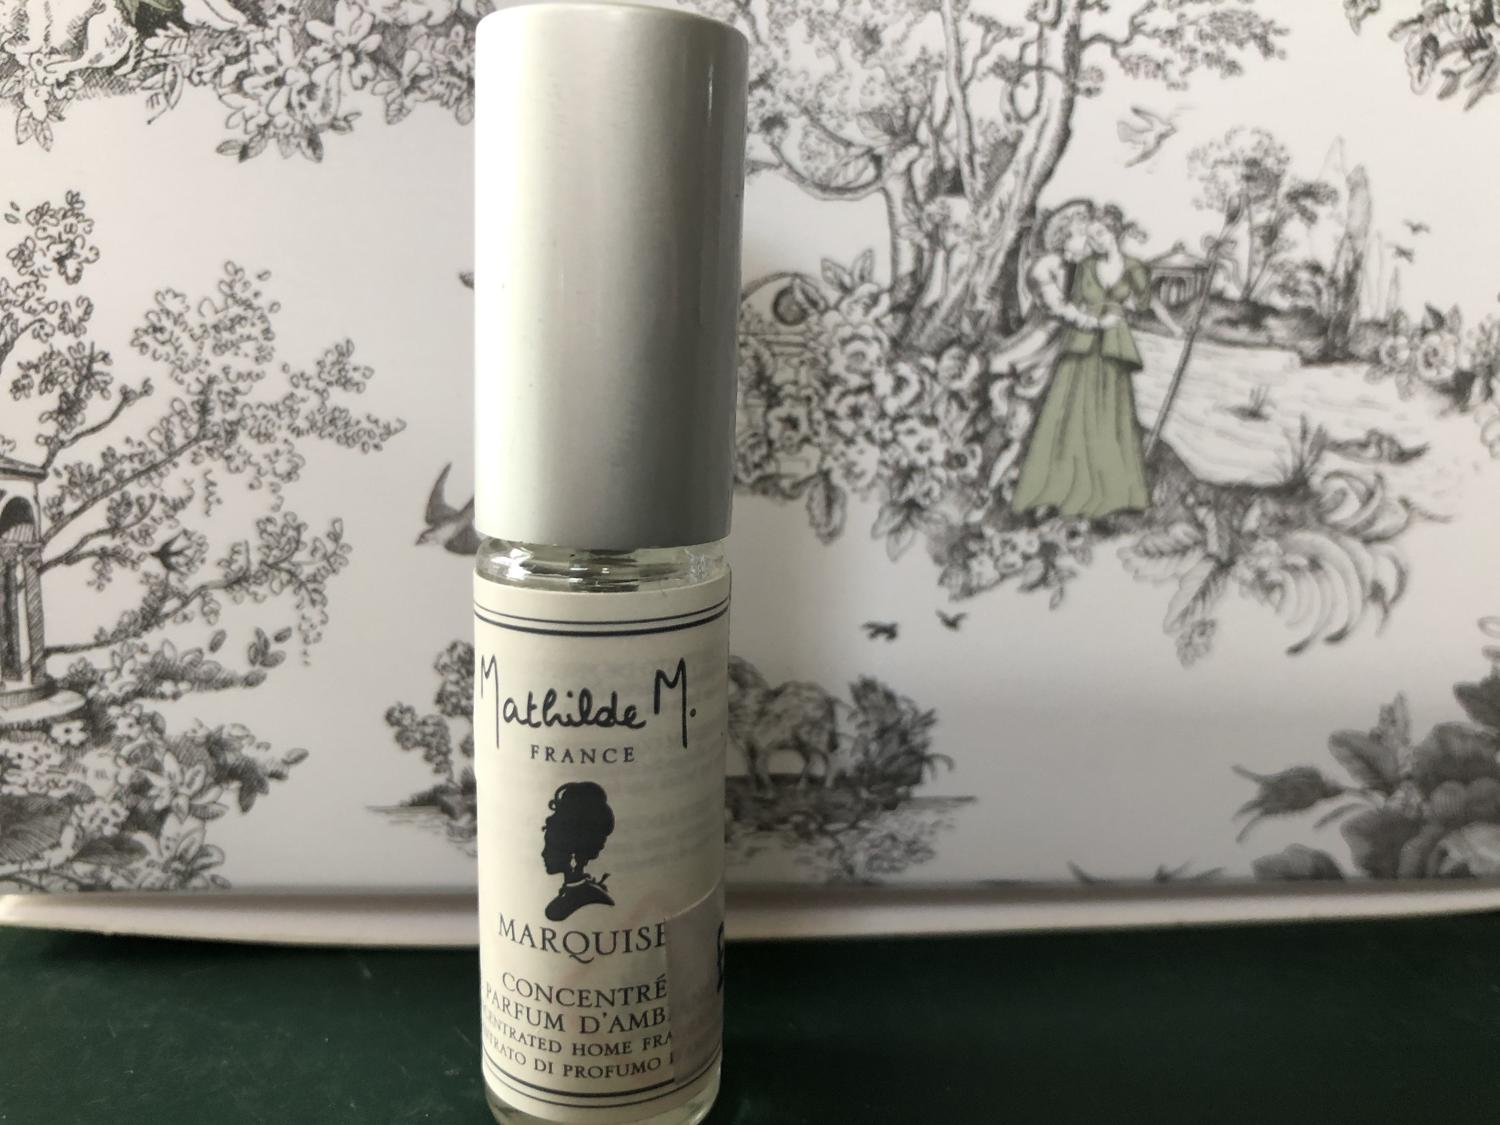 Mathilde M. France - 5 ML Concentrated Spray - Marquise Scent